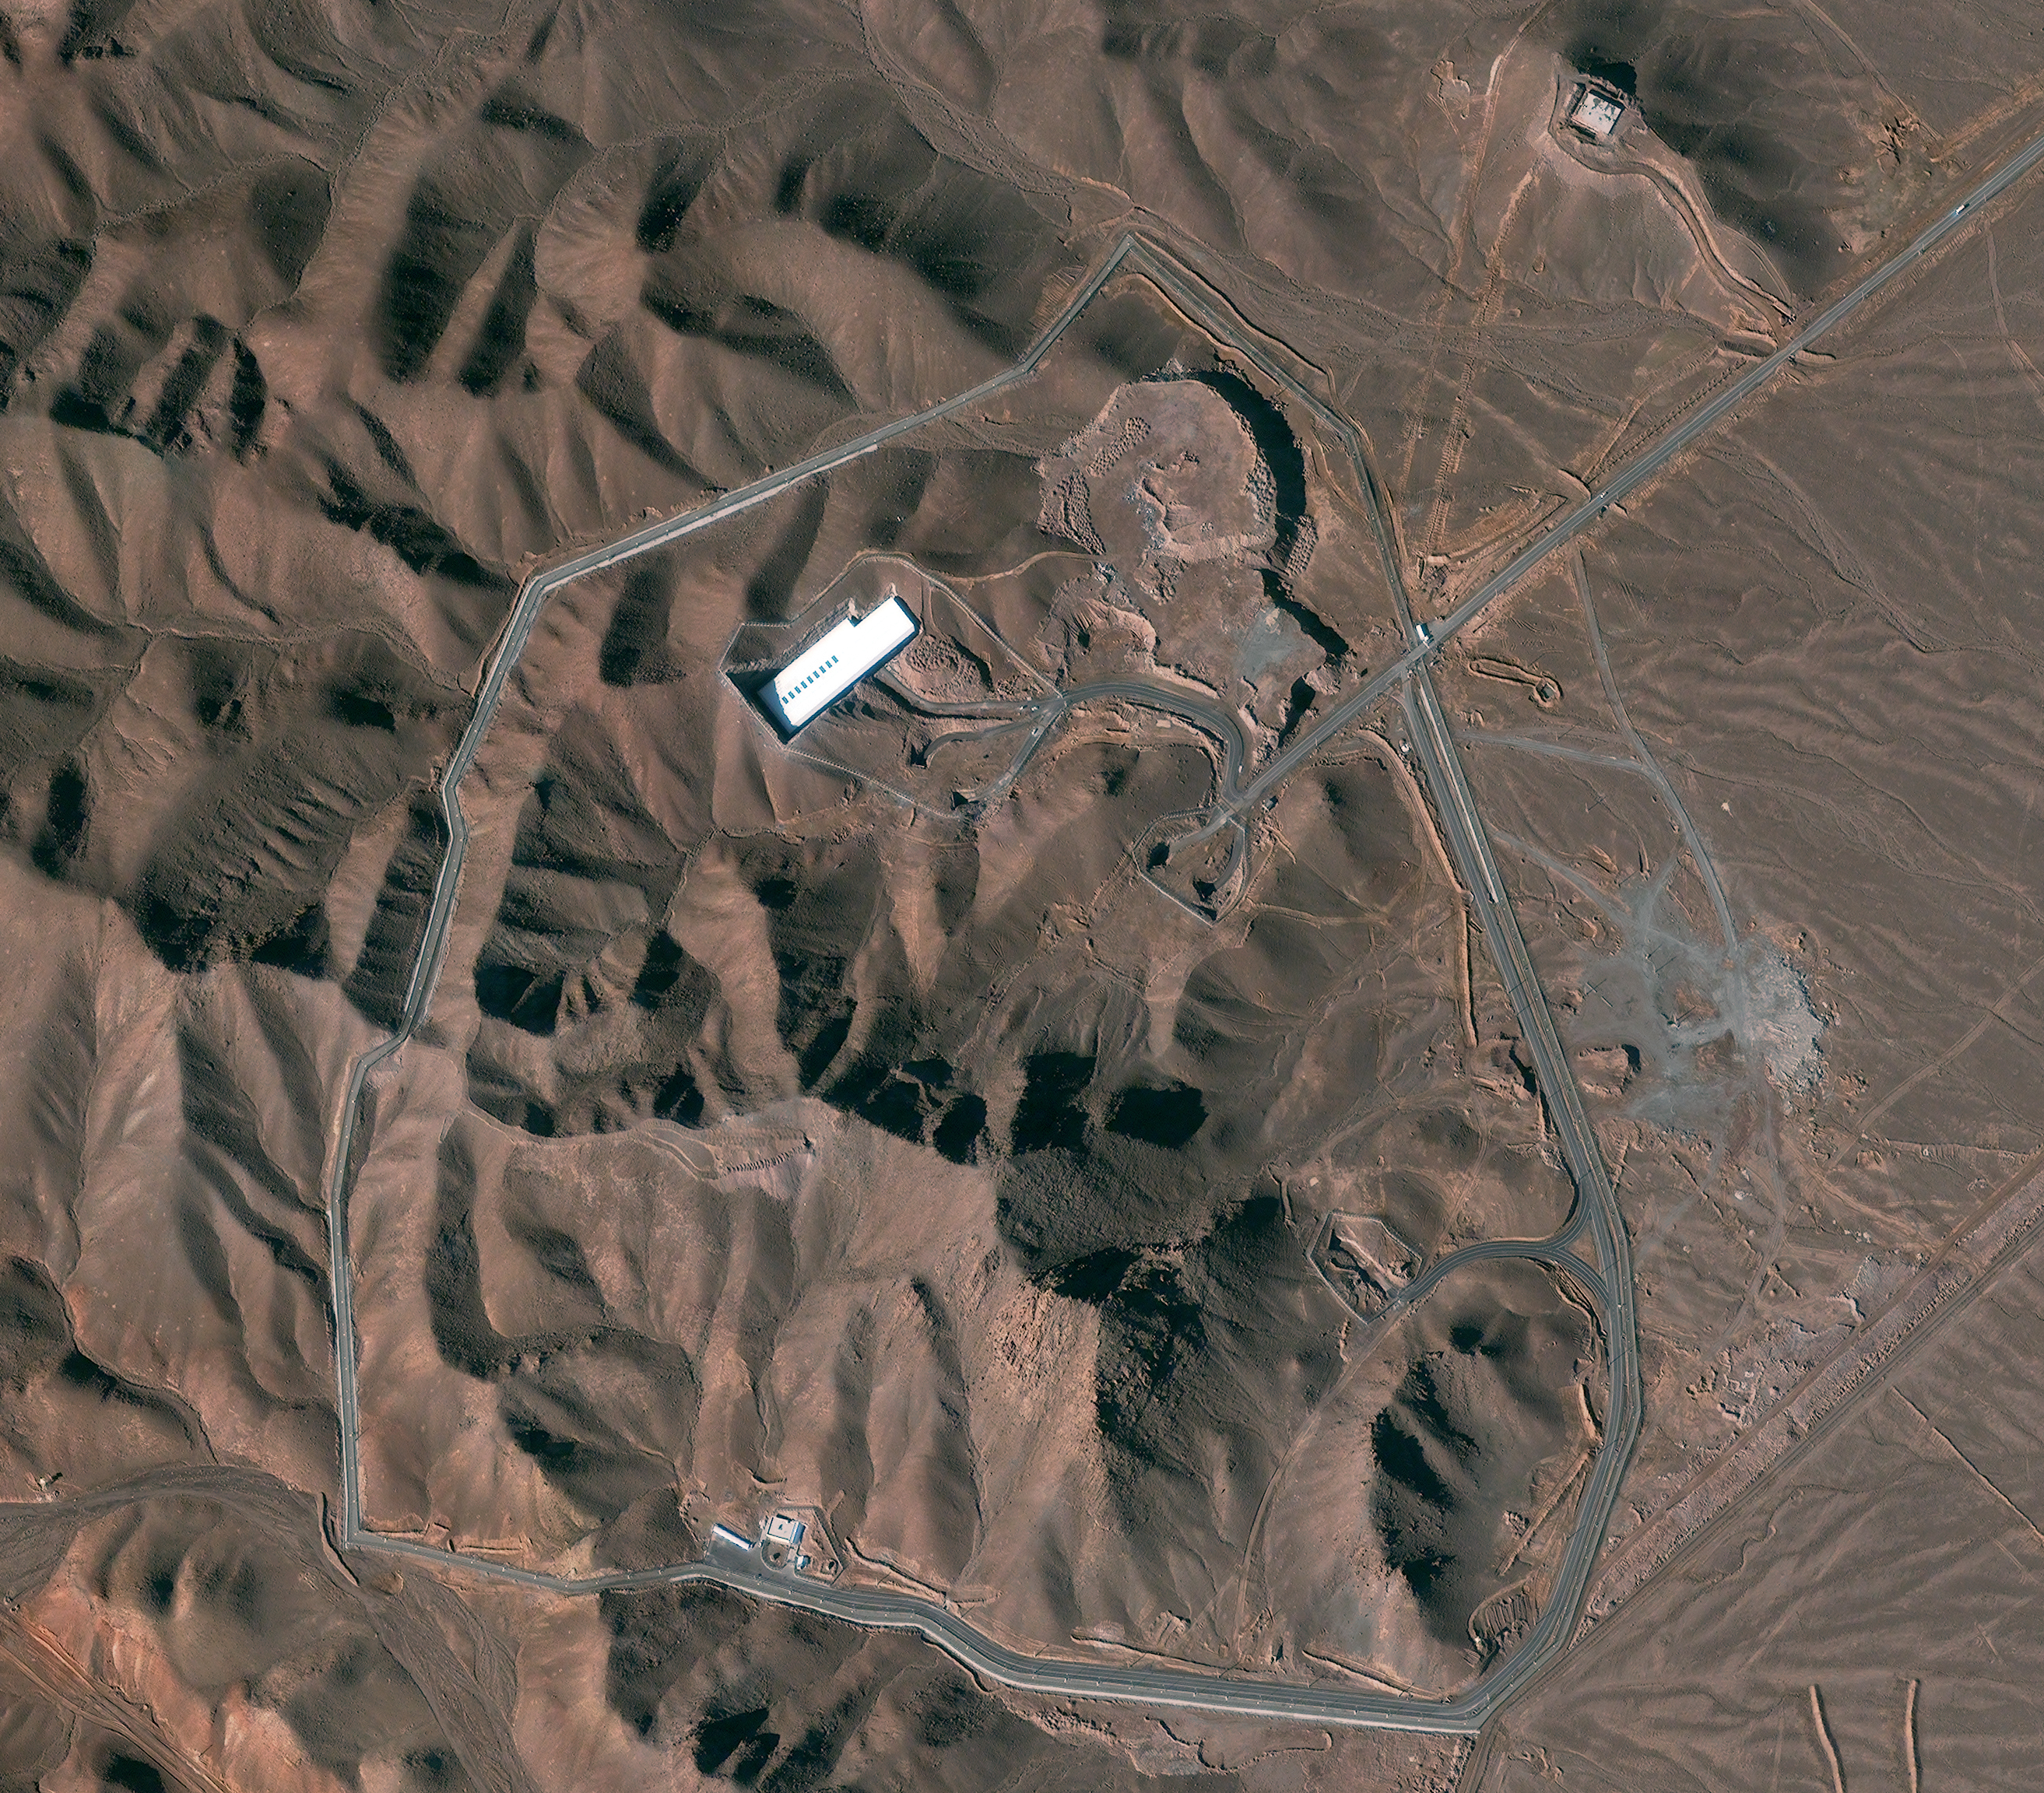 A satellite image shows the Fordow facility in Iran. Under an agreement with six world powers, Iran would stop enriching uranium at the facility. DigitalGlobe/Getty Images